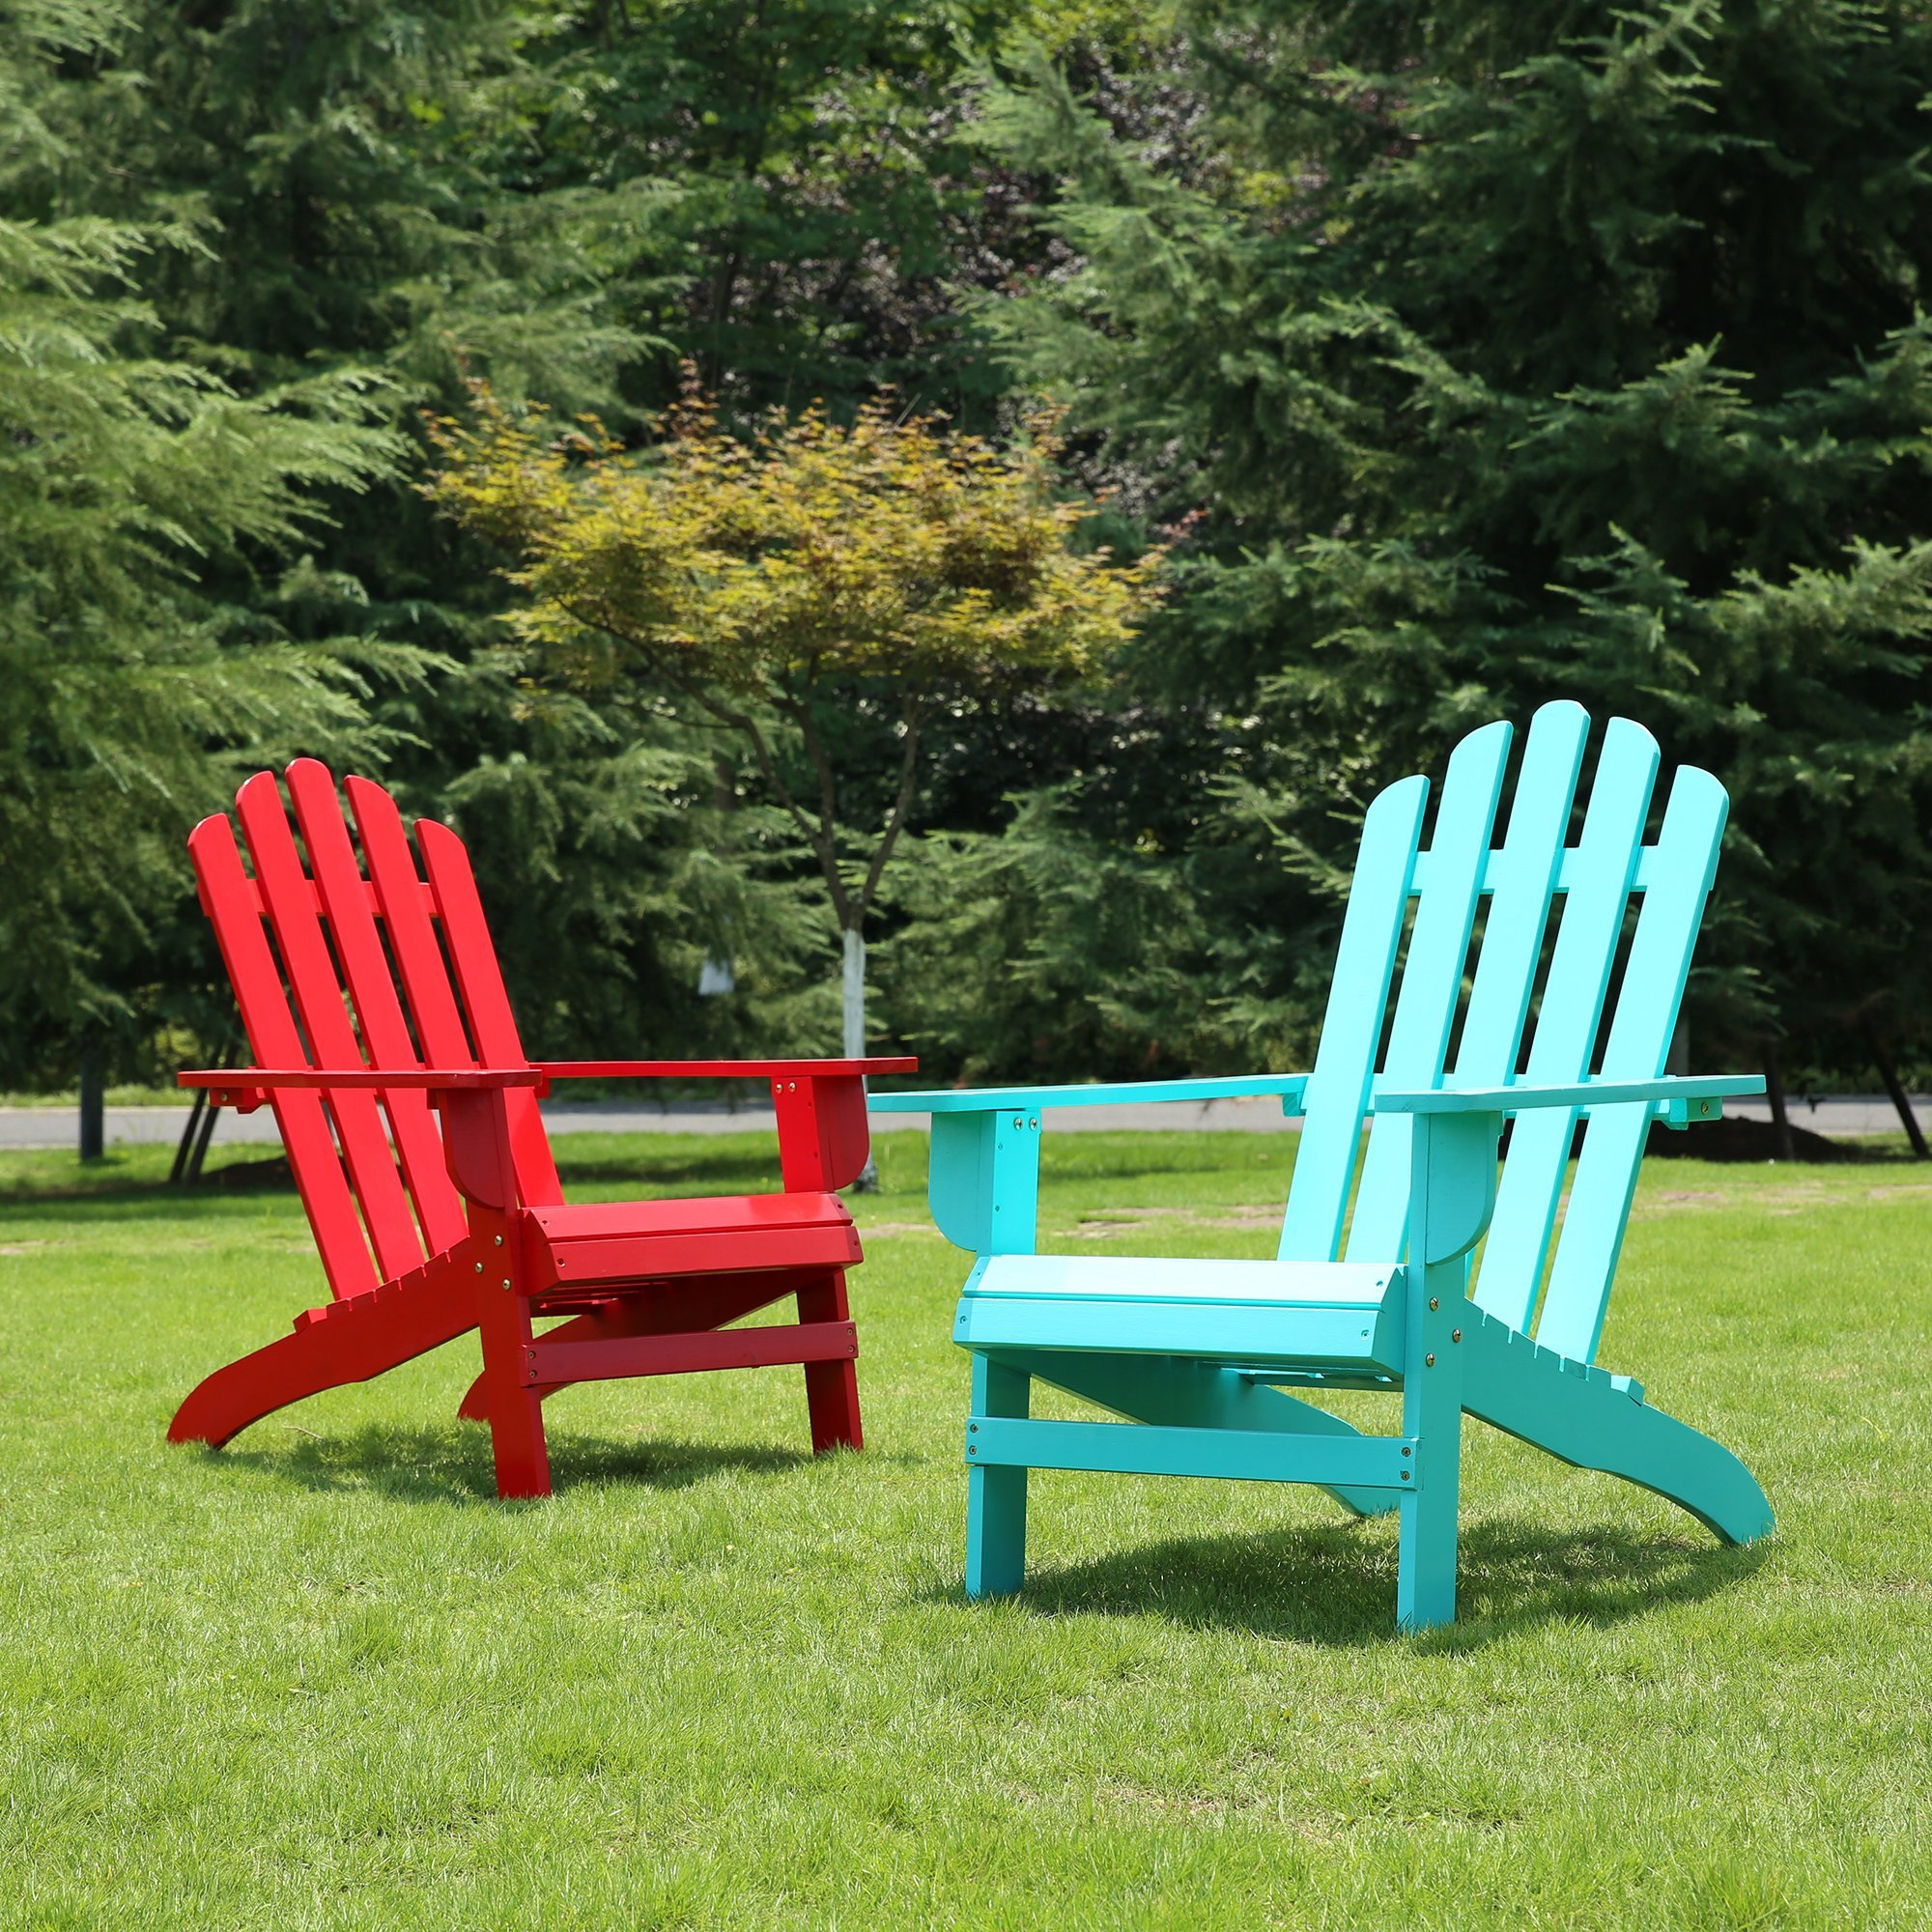 Azbro Outdoor Wooden Fashion Adirondack chair/Muskoka Chairs Patio Deck Garden Furniture,Turquoise by Azbro (Image #6)